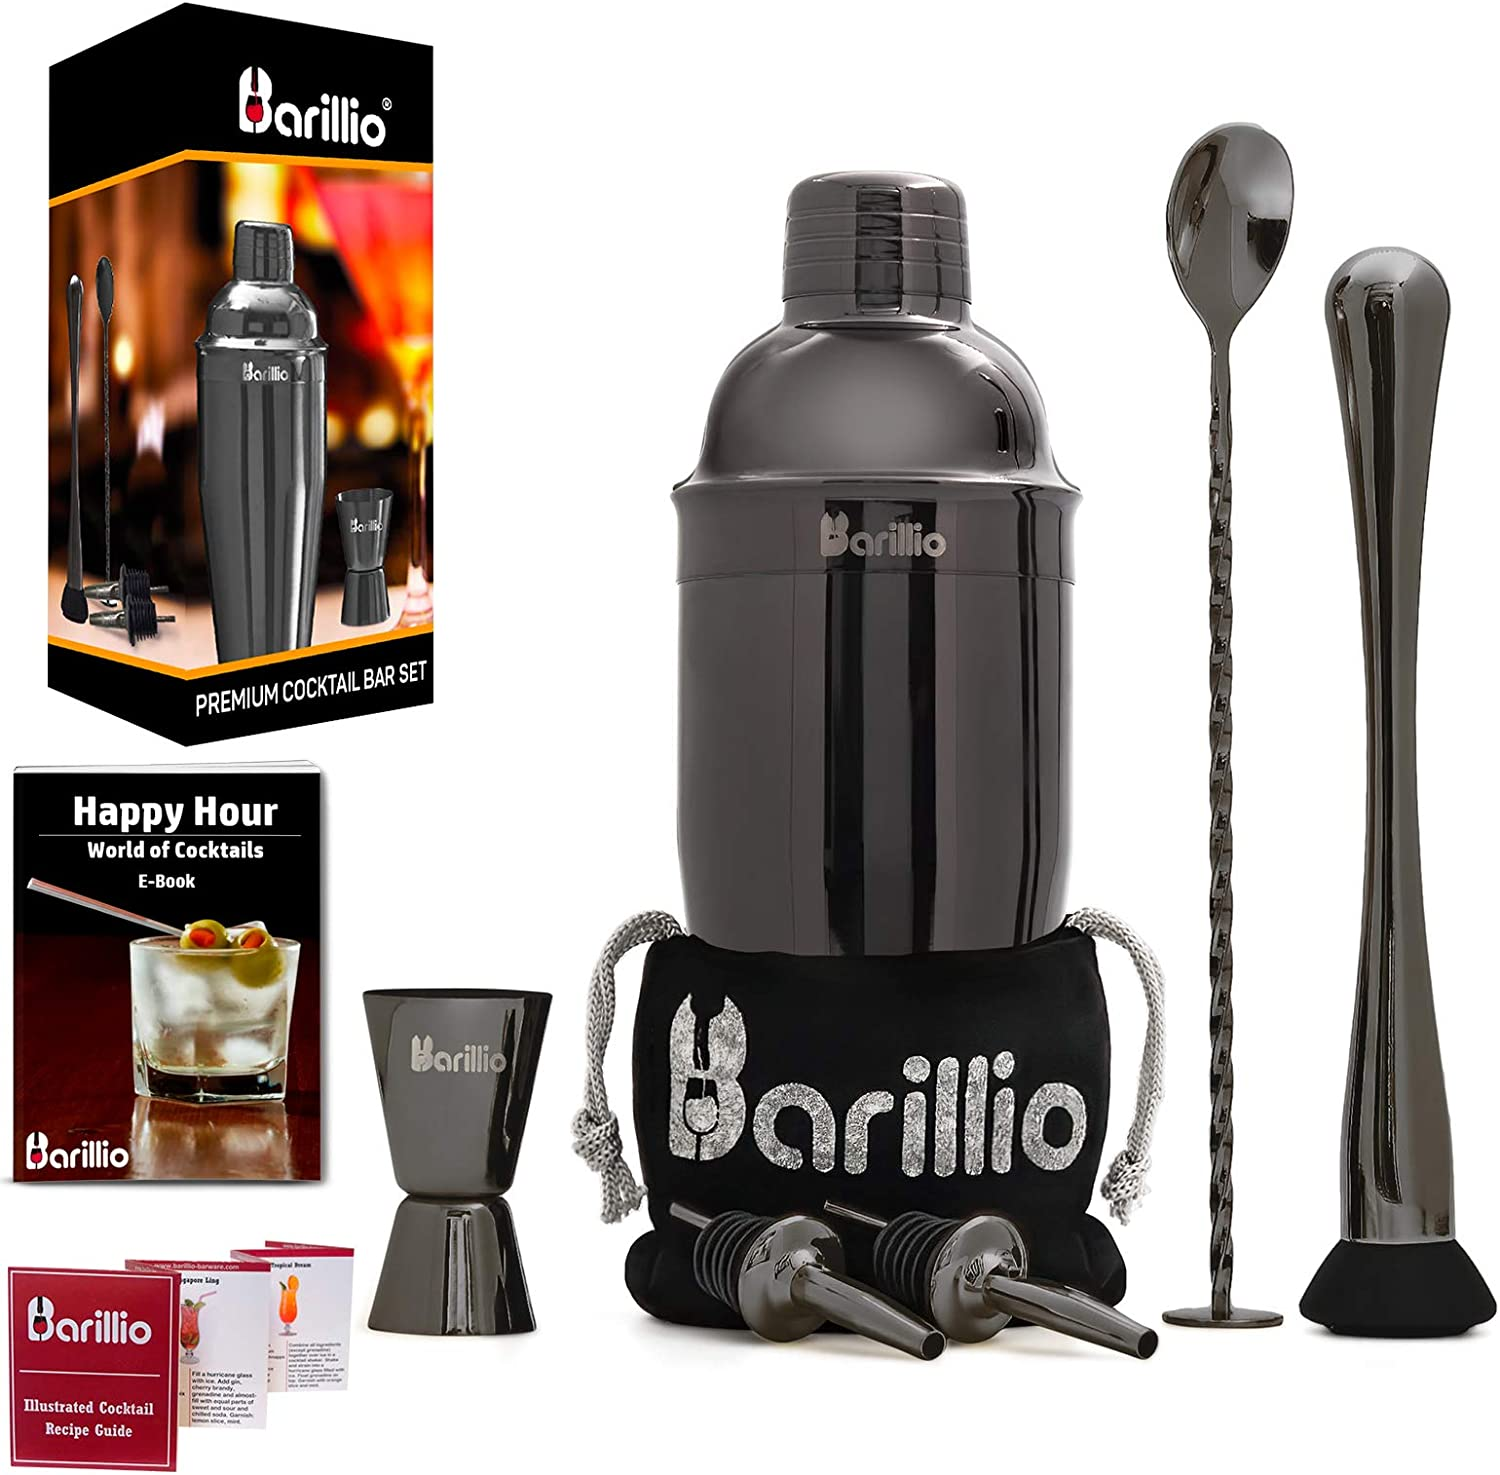 Black Cocktail Shaker Set Bartender Kit by BARILLIO: 24 oz Stainless Steel Martini Mixer, Muddler, Mixing Spoon, jigger, 2 liquor pourers, Velvet Bag, Recipes Booklet & eBook